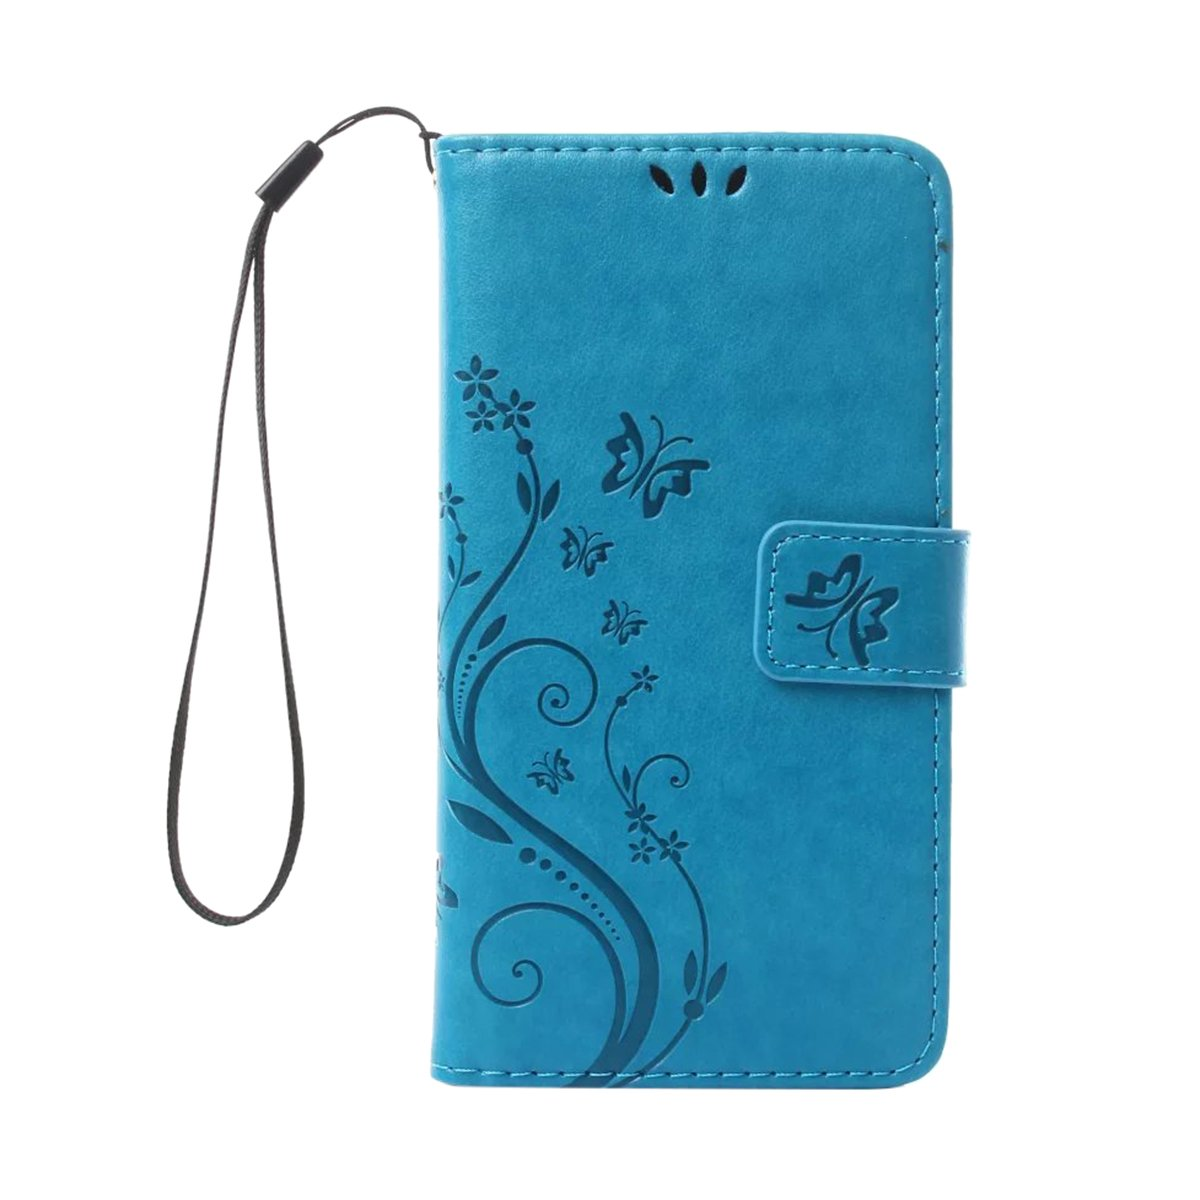 LG G6 beautiful Case , [Stand Function ] Fashion Flower Butterfly Pattern Retro PU Leather Wallet Case Flip Protective Cover with Card Slots & Wrist Strap for LG G6 (LG G6, blue) BTJP